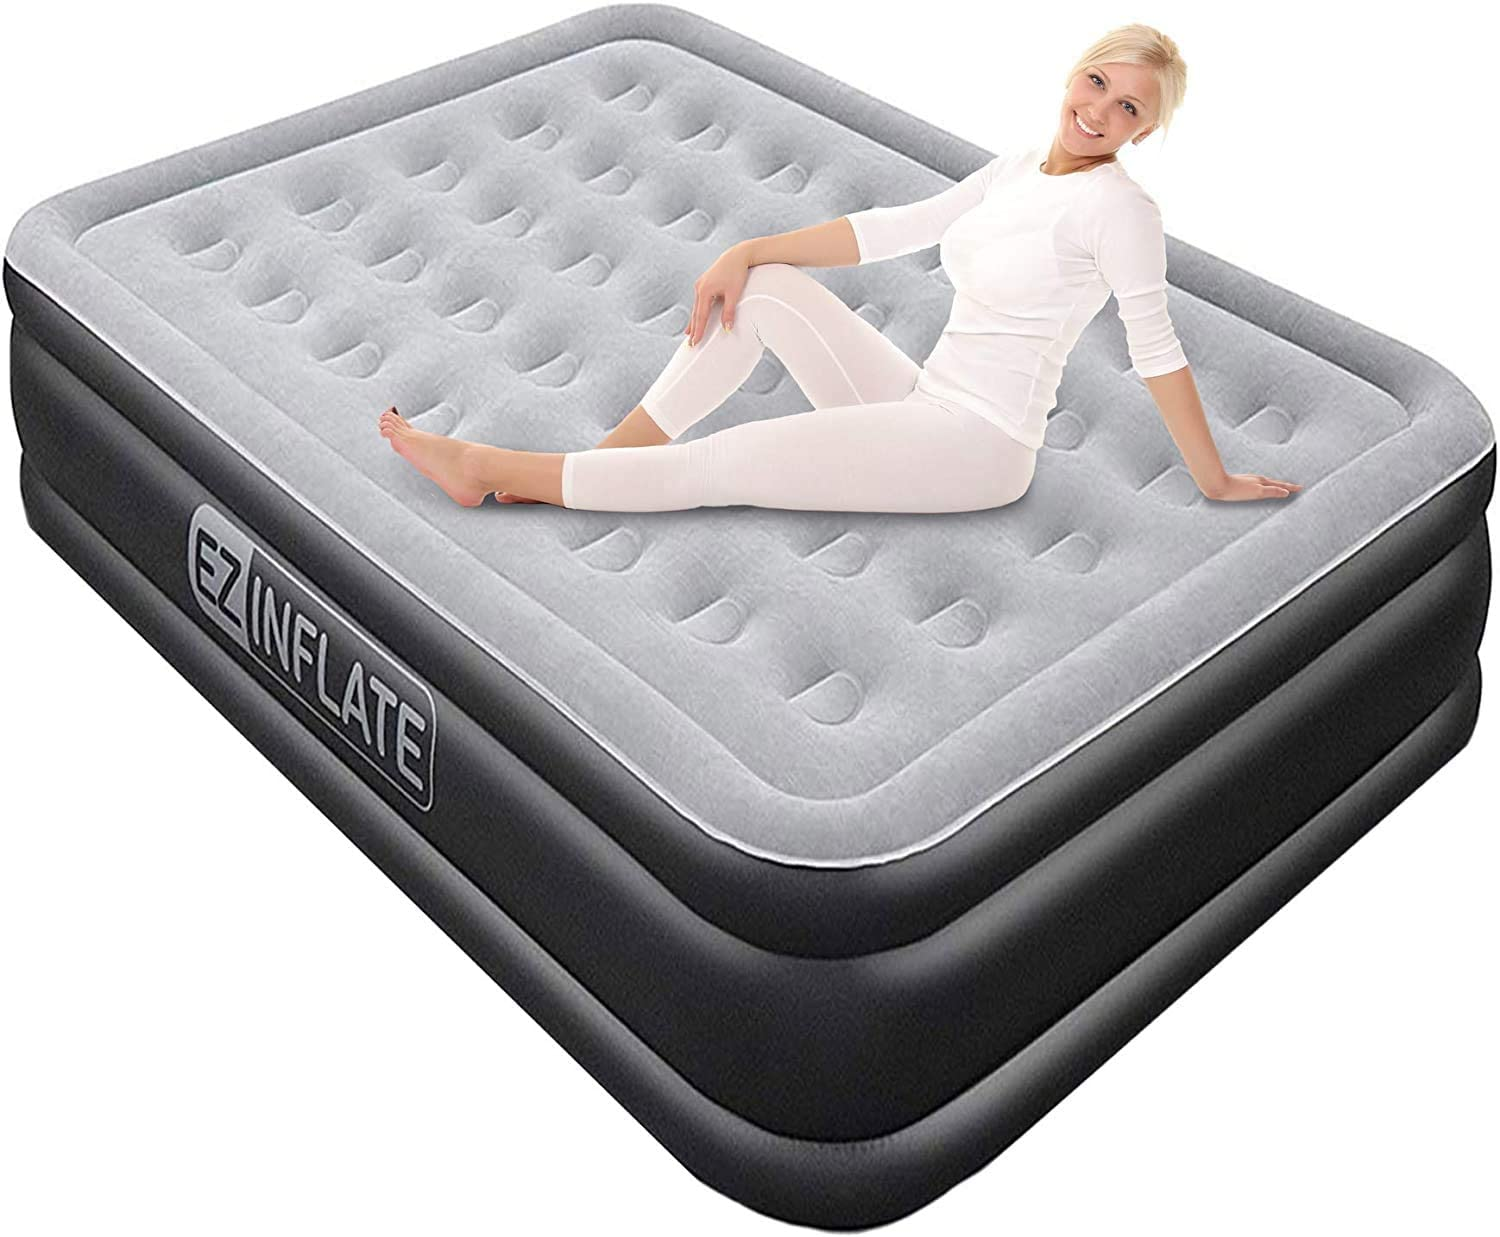 EZ INFLATE Luxury Double High Queen air Mattress with Built in Pump, Queen Size, Inflatable Mattress for Home Camping Travel, Luxury Blow up Bed at a, 2 Year Warranty: Kitchen & Dining